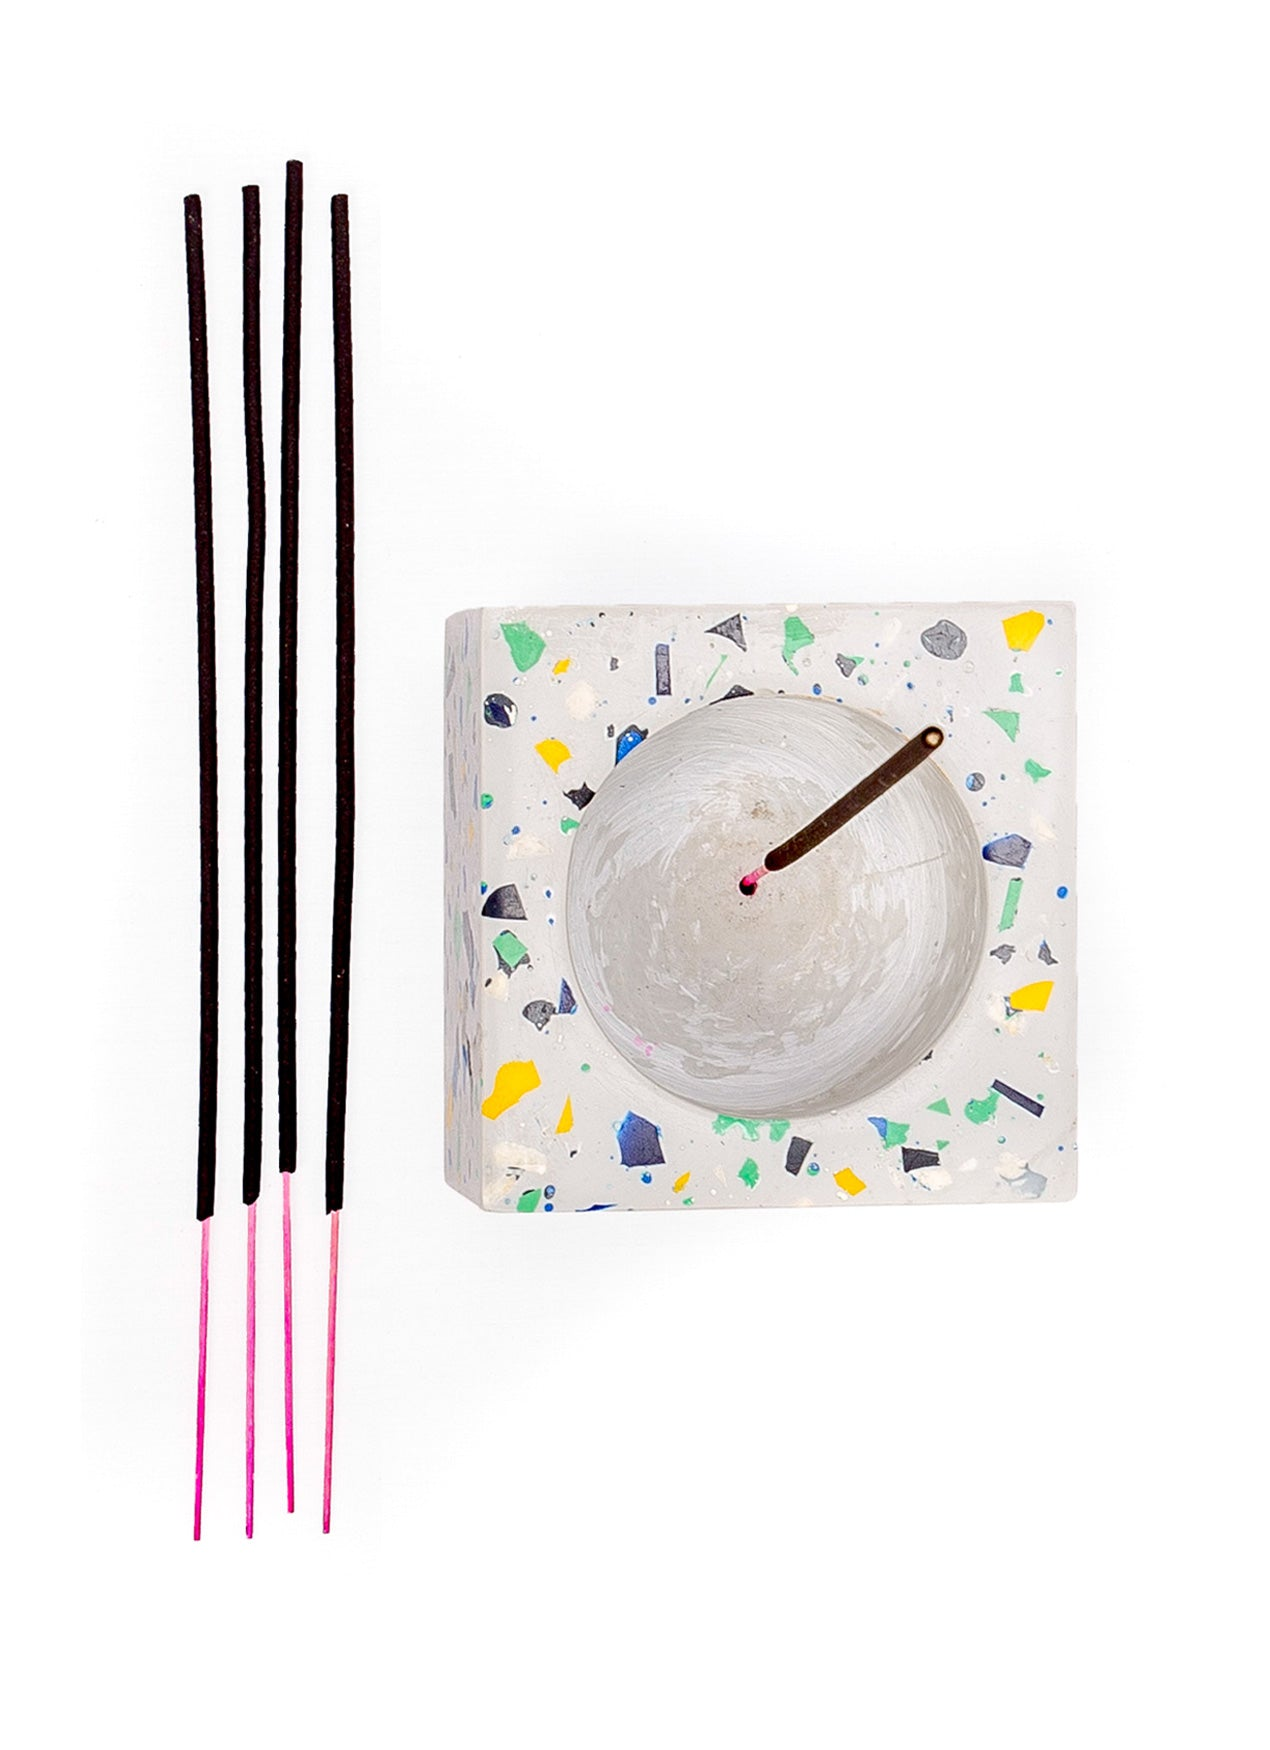 White Incense Holder with Incense Sticks